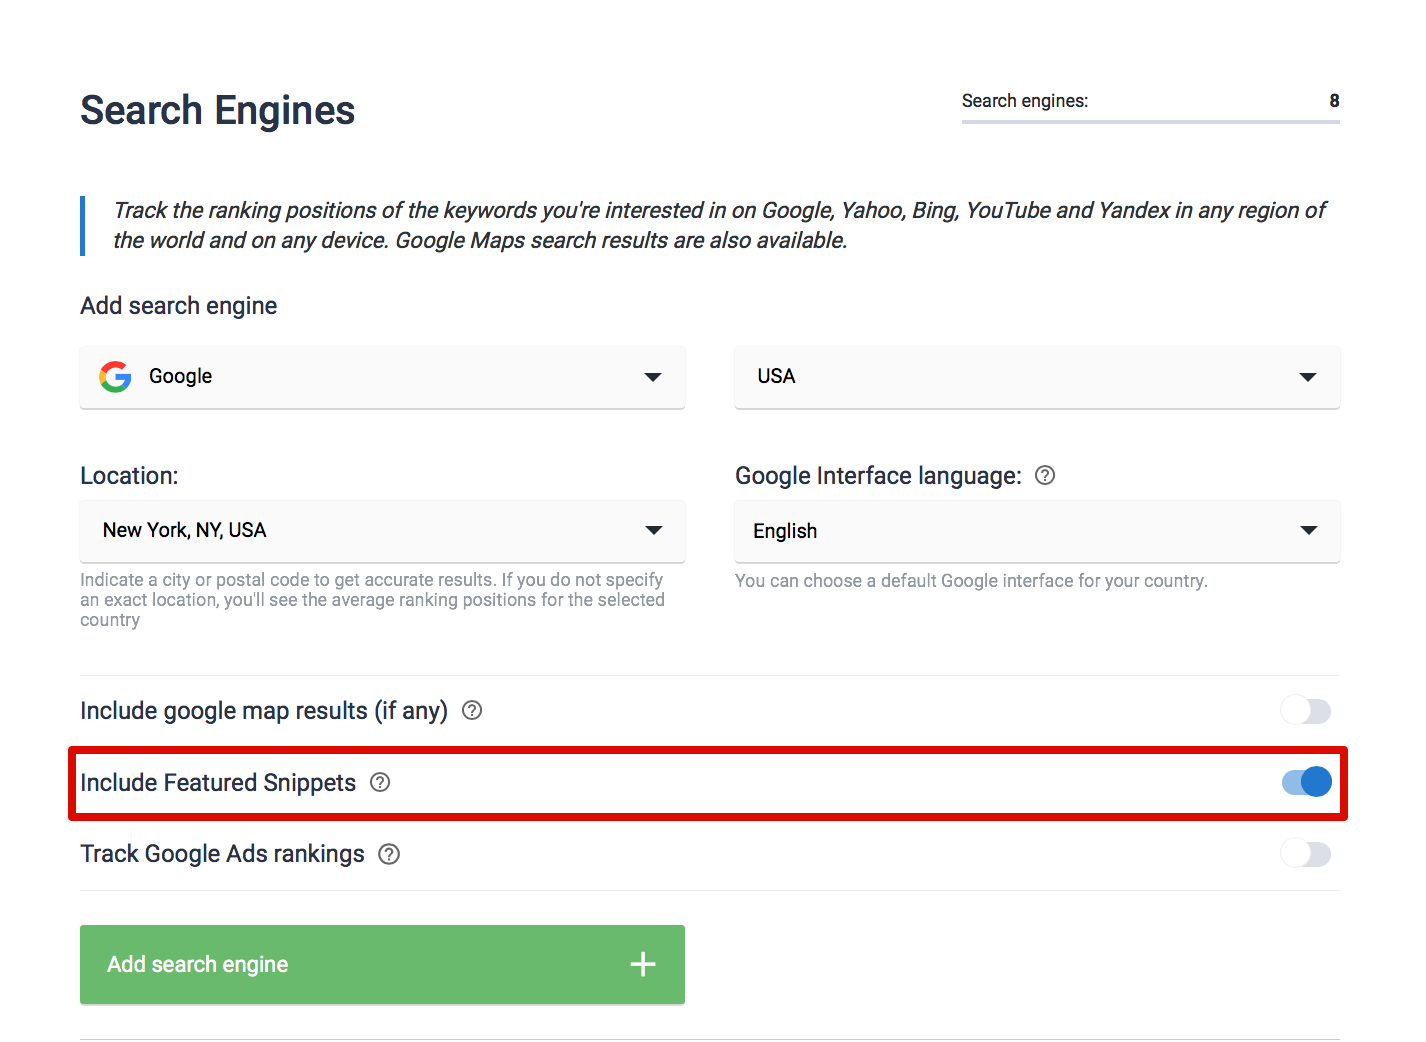 Include featured snippets